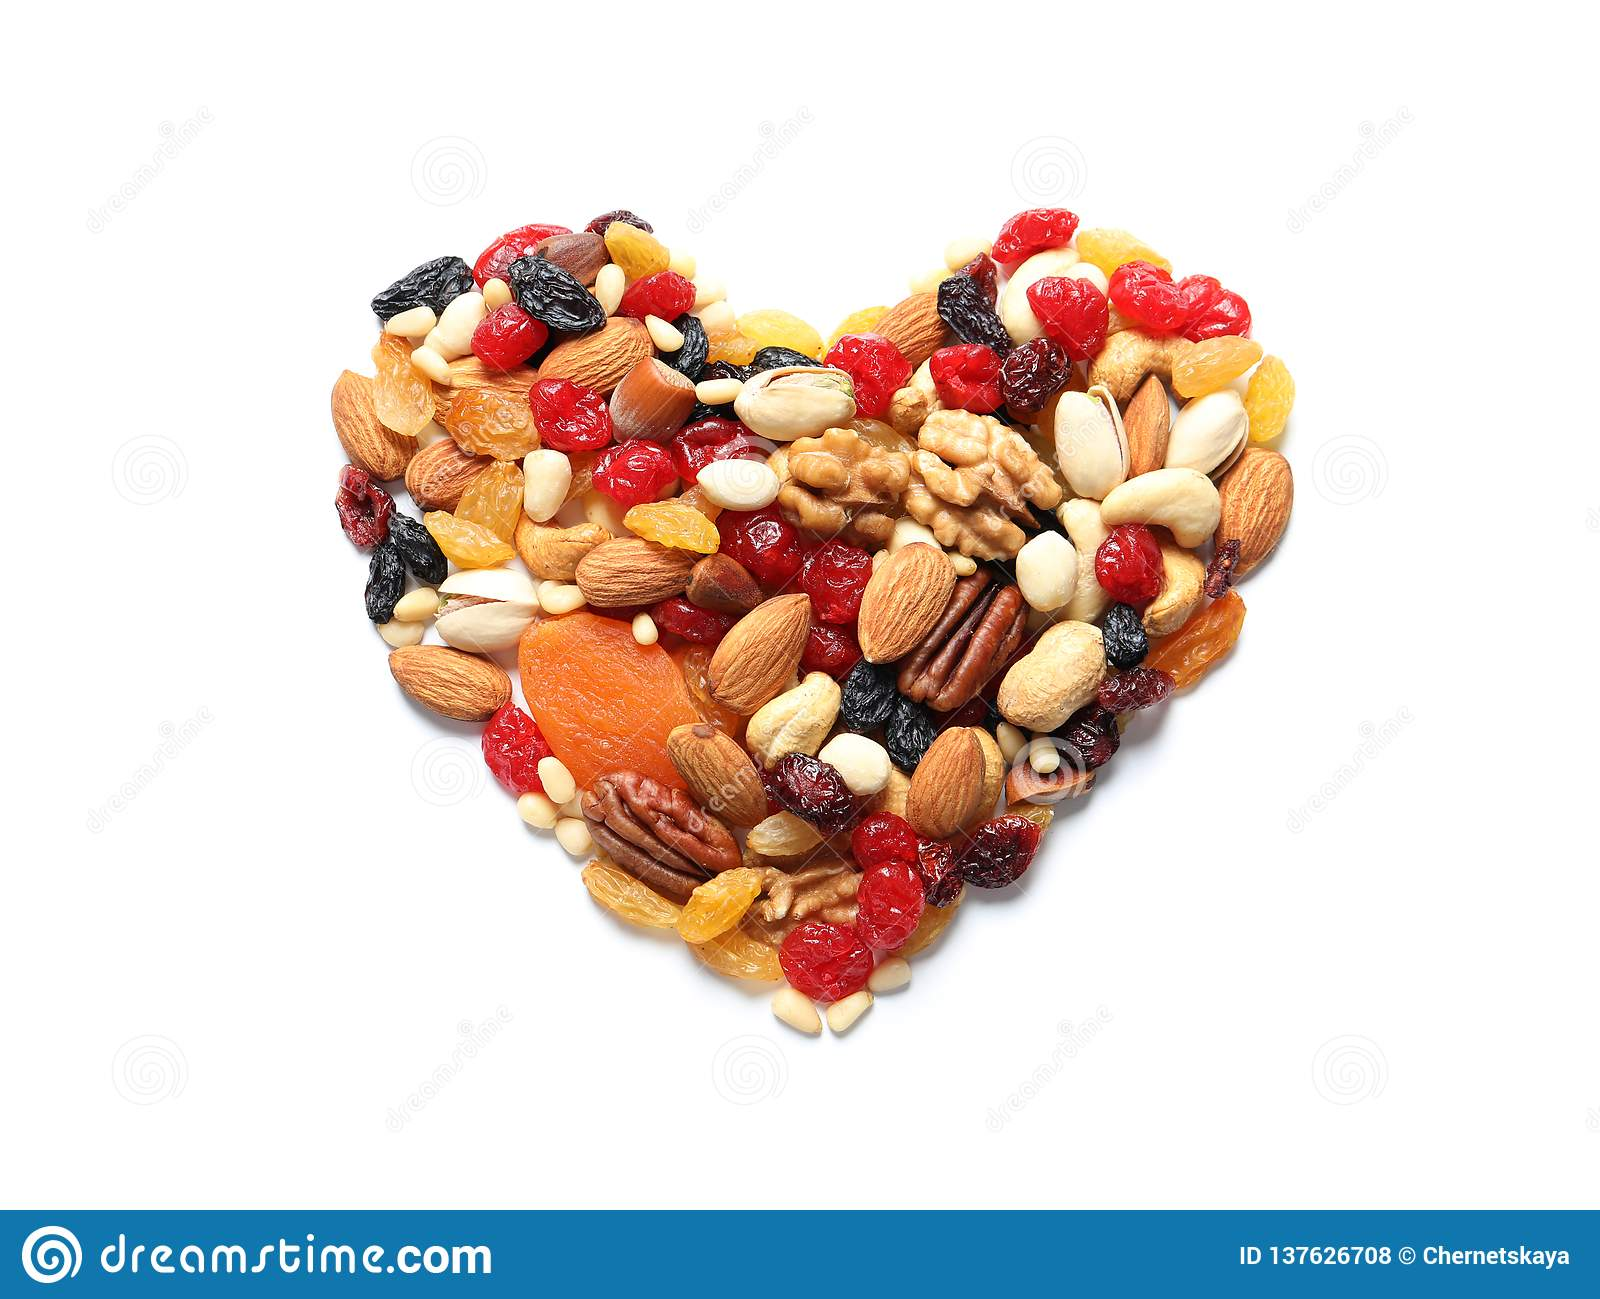 Heart made of dried fruits and nuts on white background